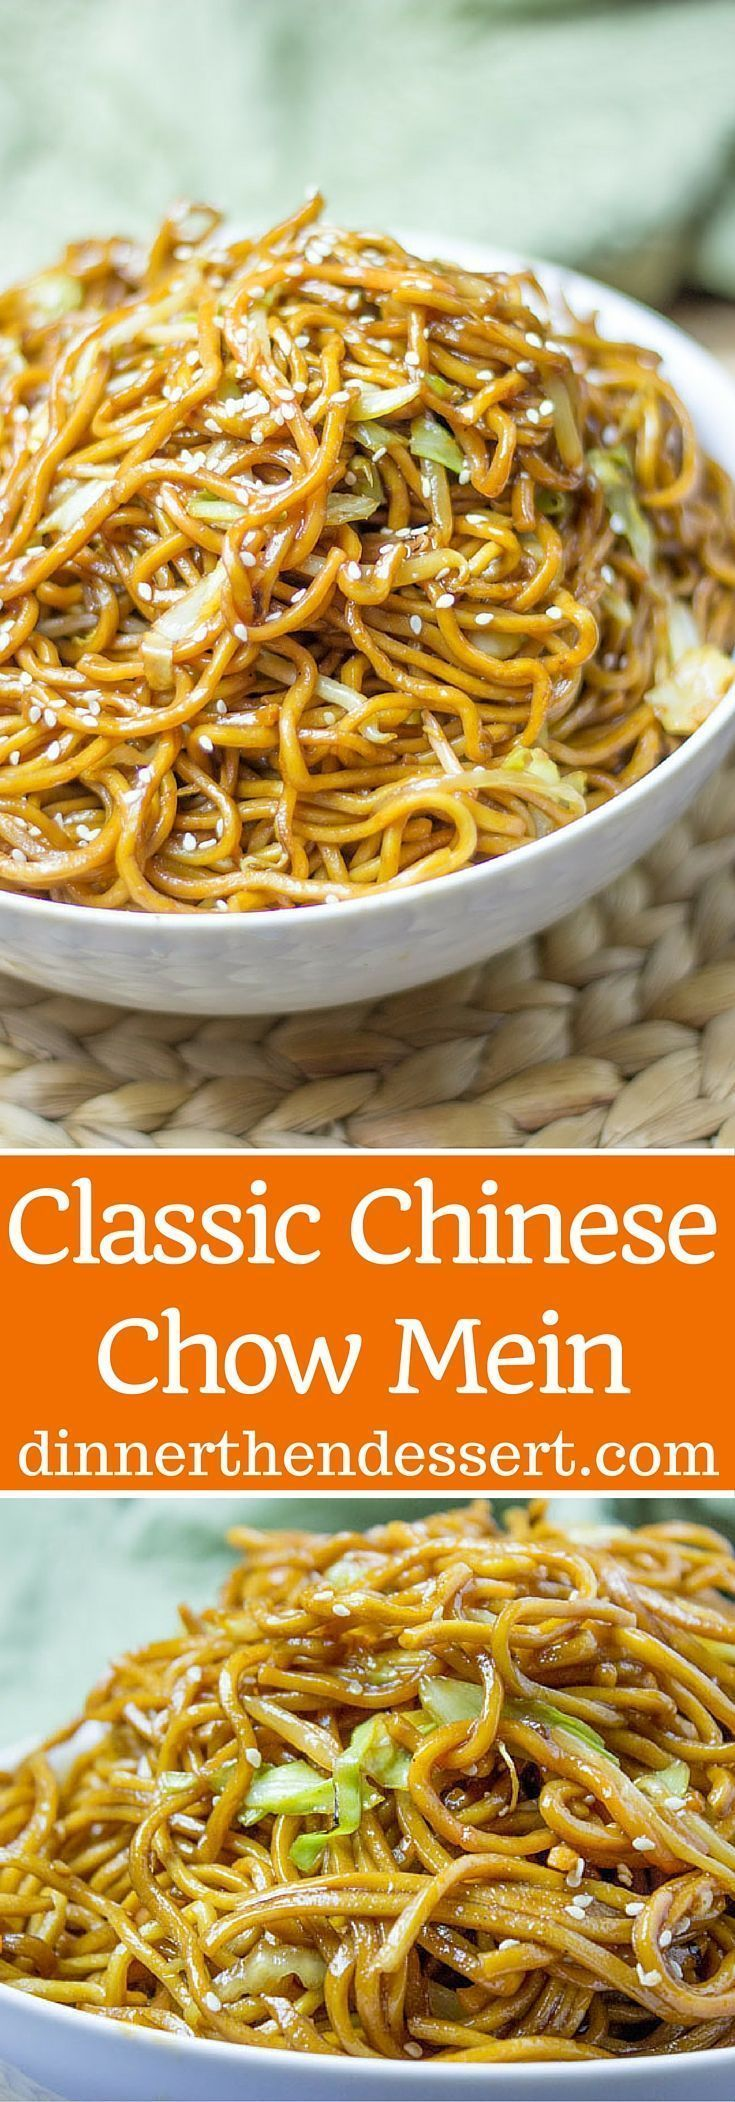 4348 best asian recipe collection images on pinterest cooking food classic chinese chow mein with authentic ingredients and easy ingredient swaps to make this a pantry chinese food recipes forumfinder Choice Image